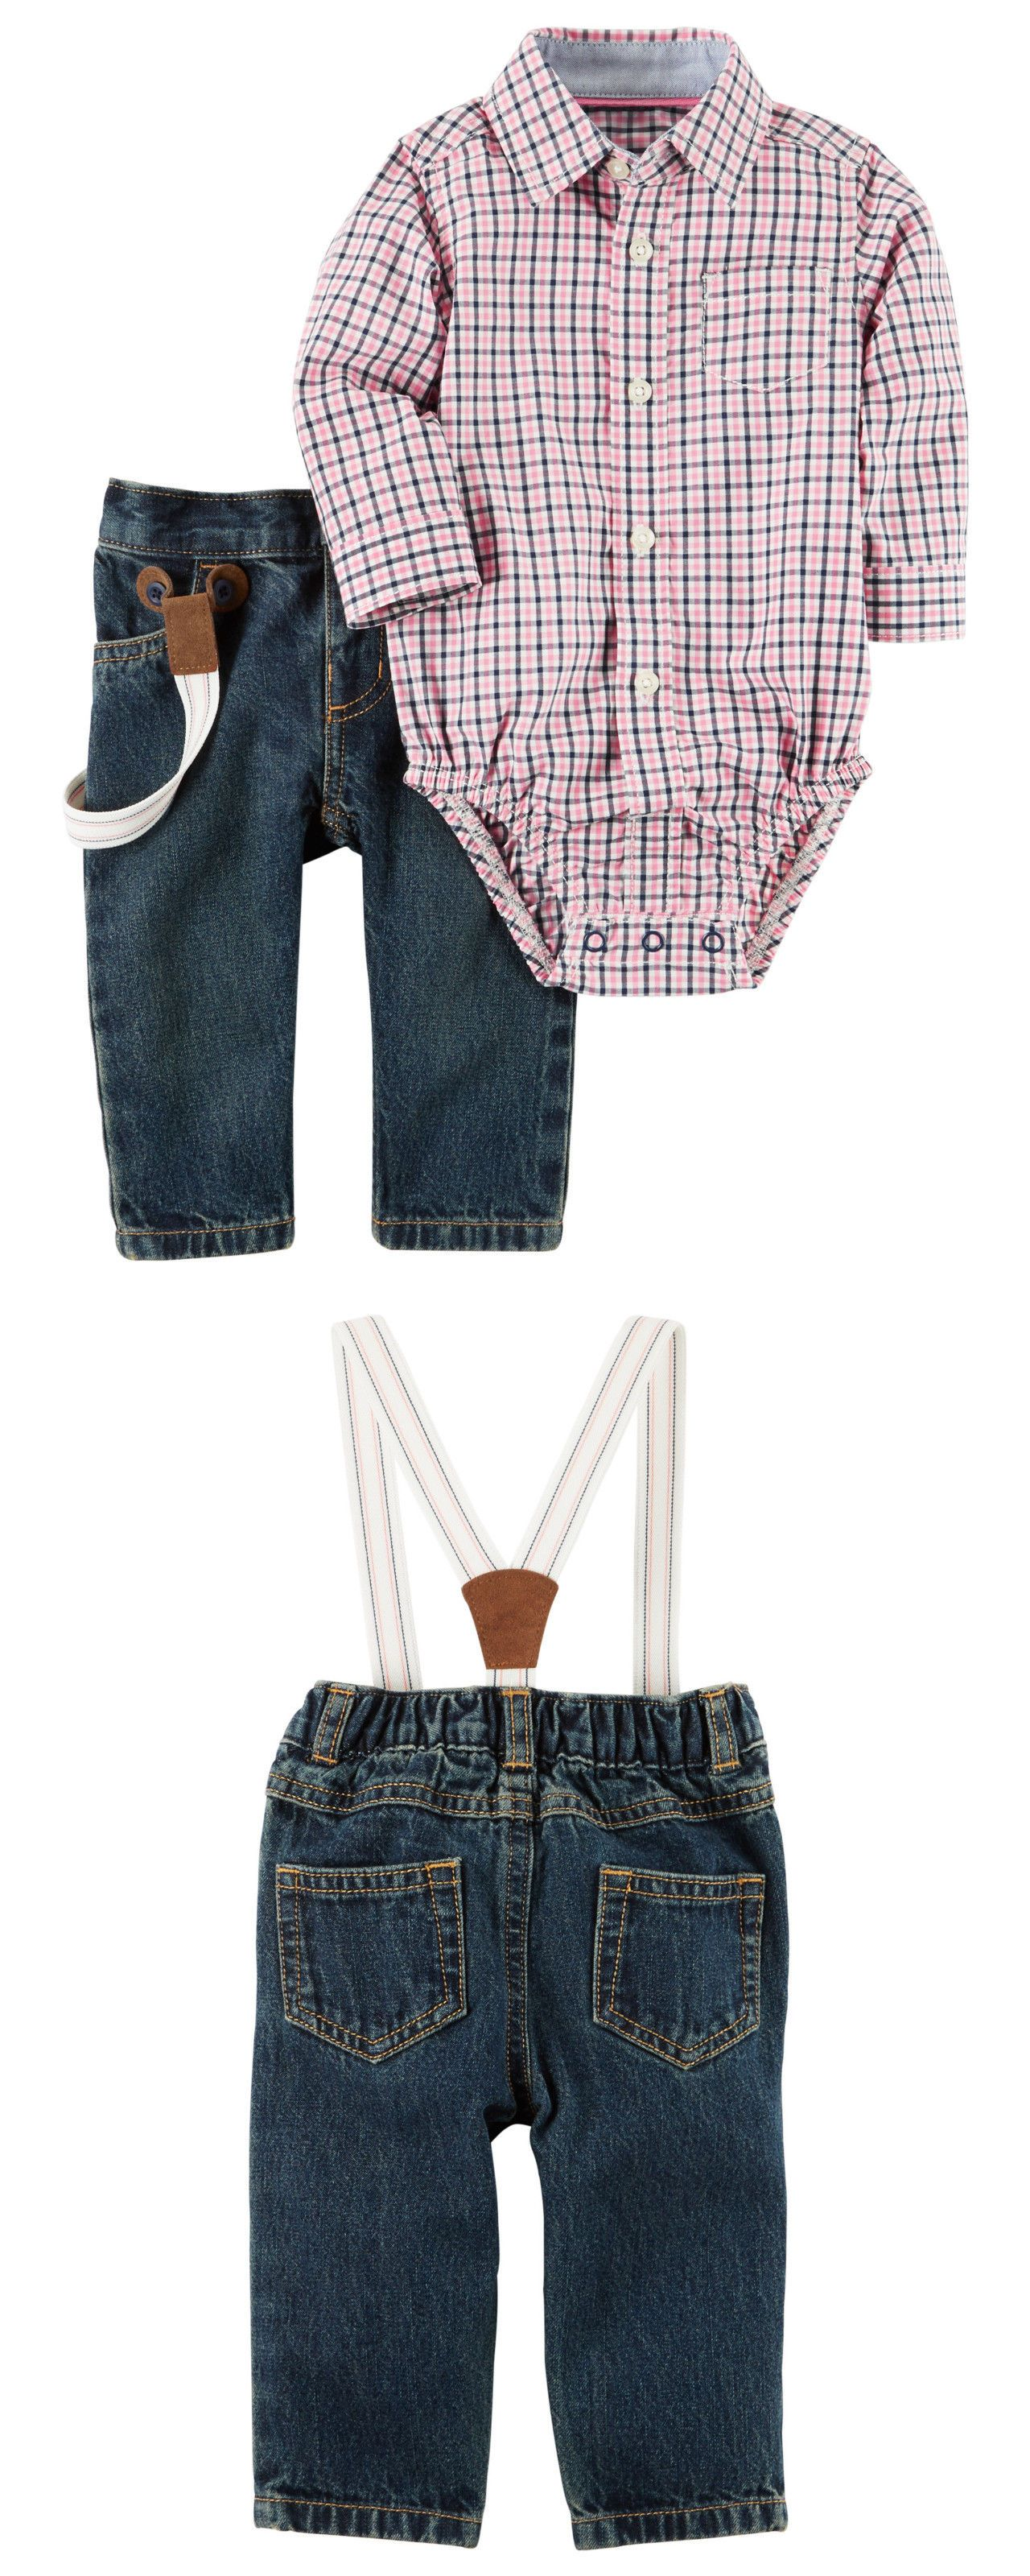 Baby Boys Clothing And Accessories Carters Nb 3 6 9 12 18 24 Months